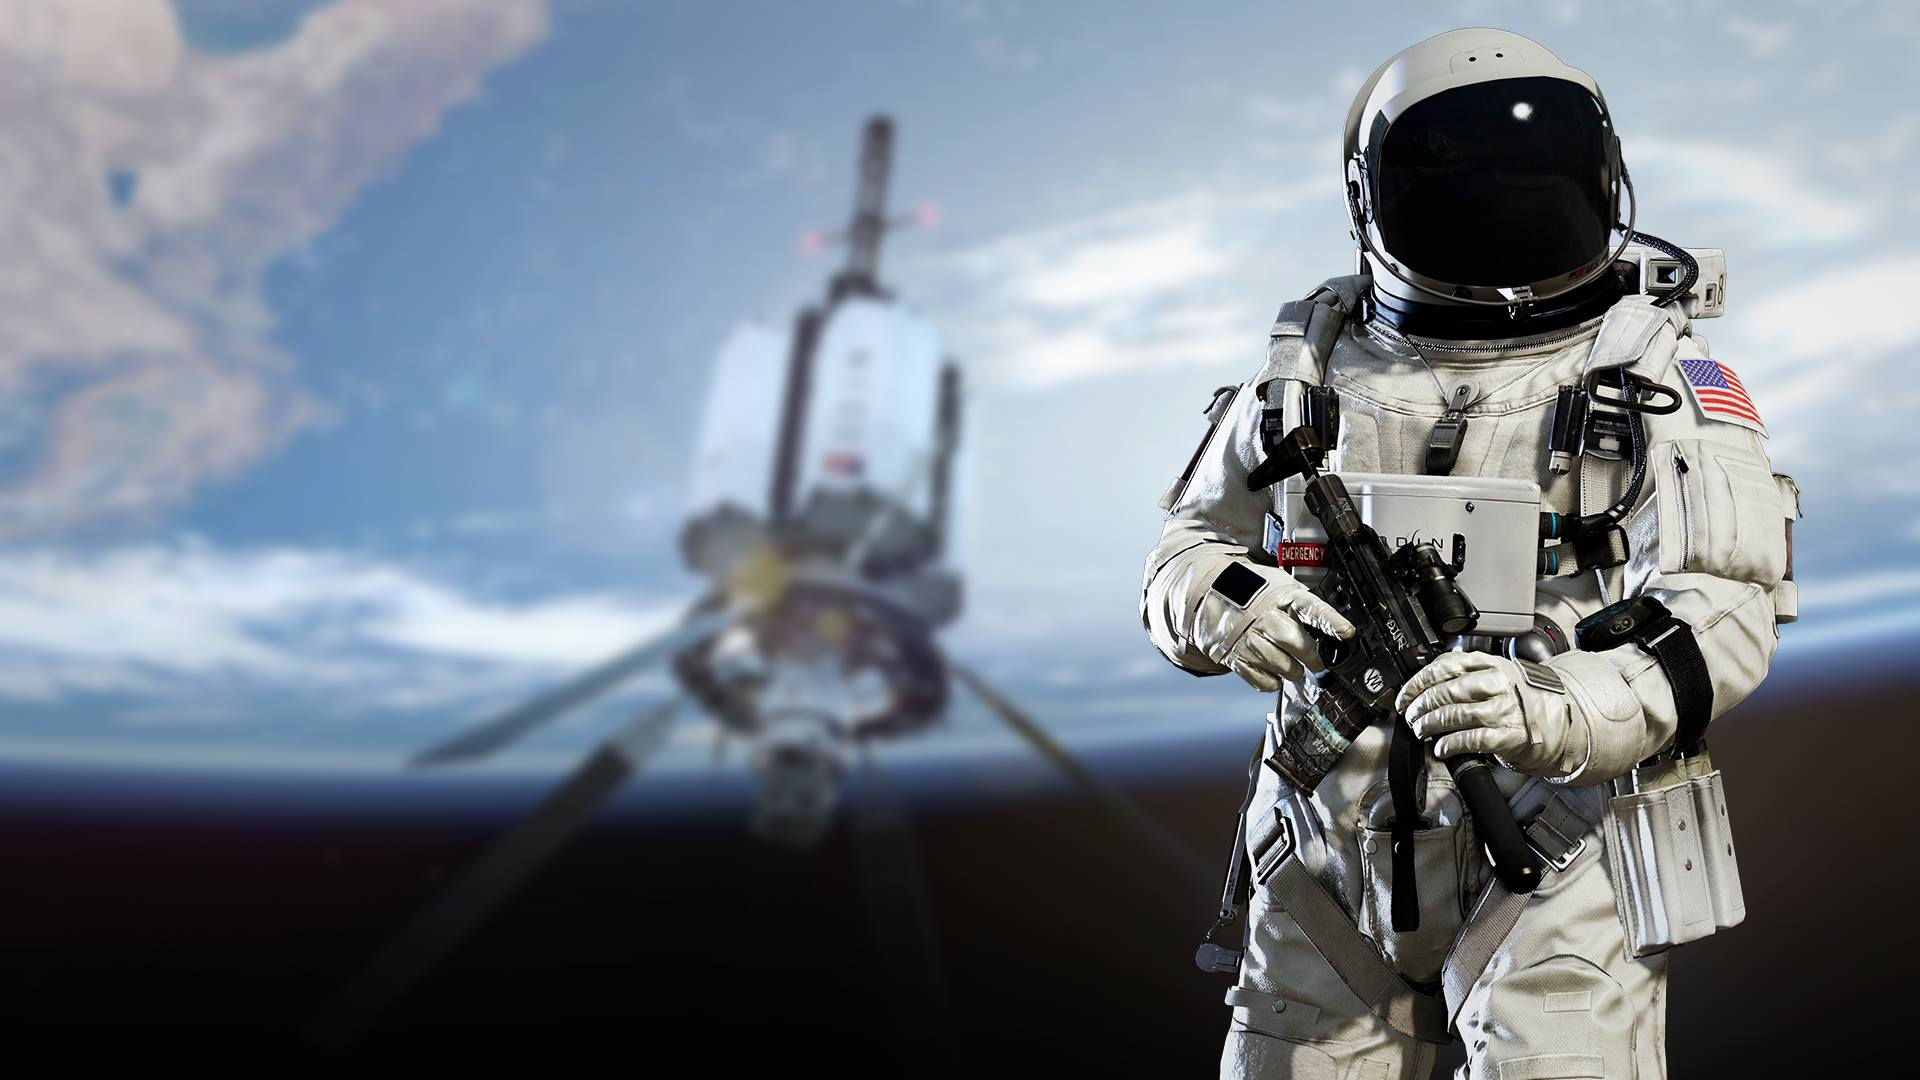 Why do astronauts take weapons into space